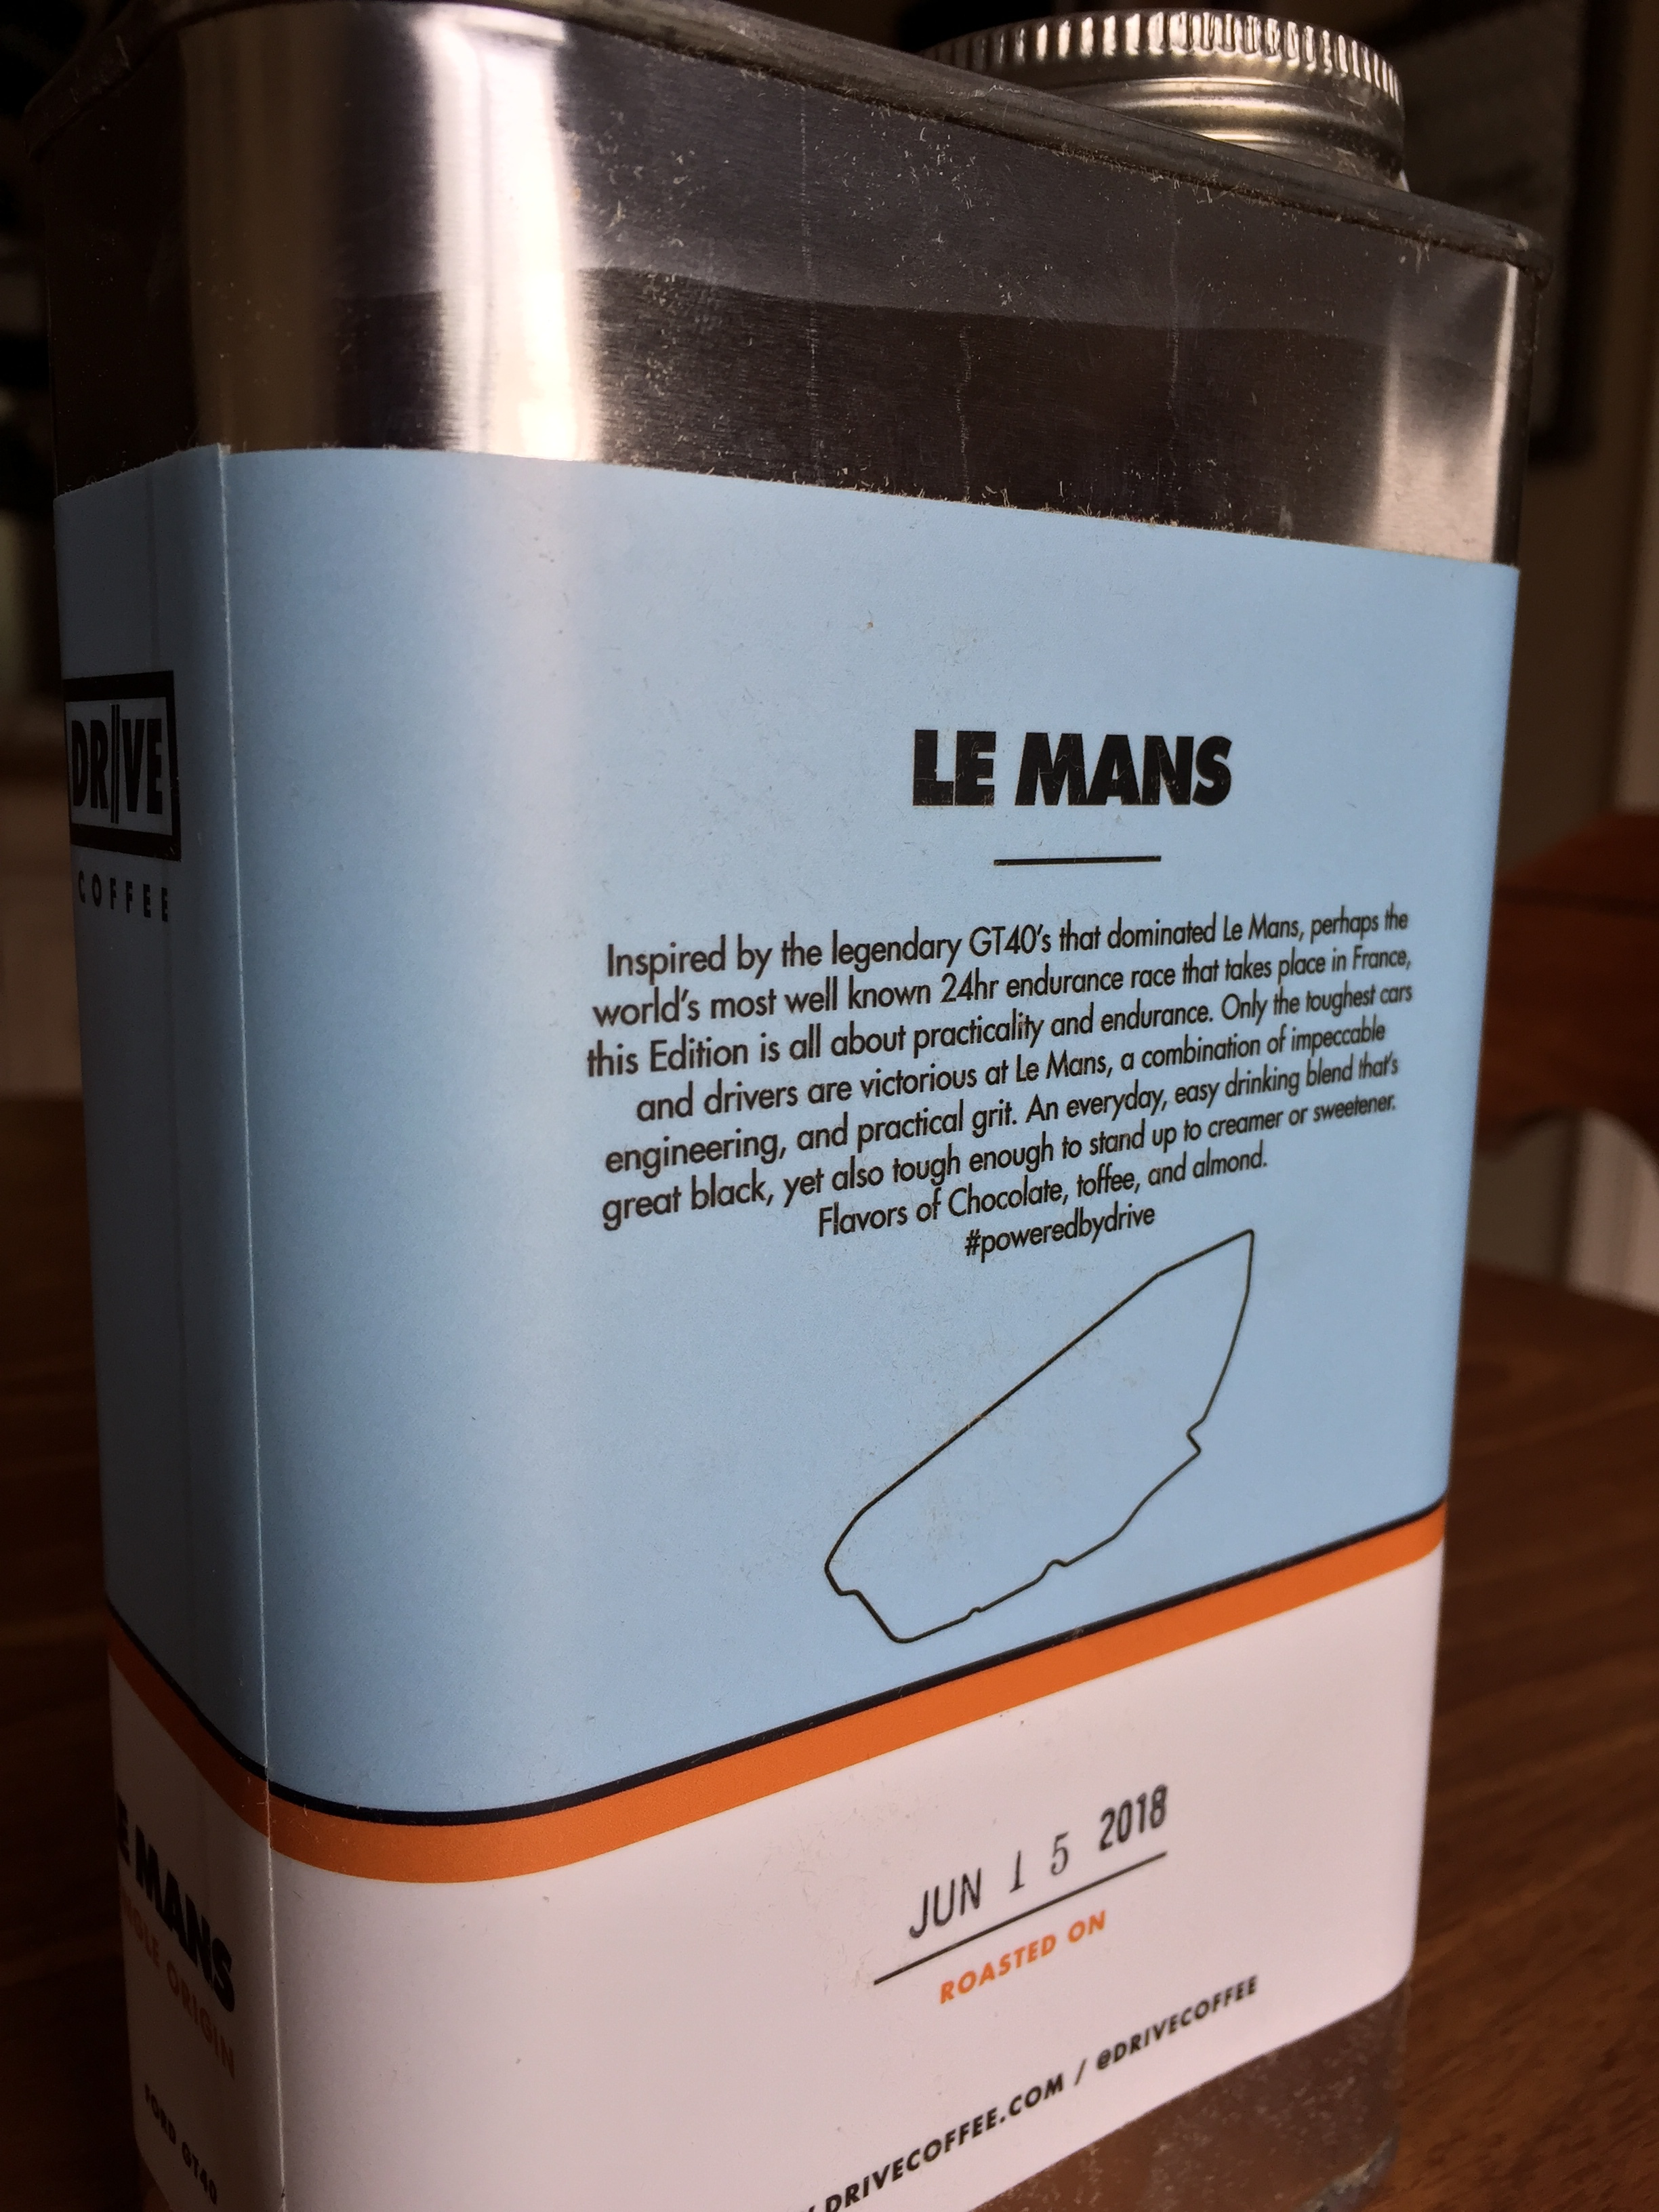 The Le Mans roast date is printed on the label for the exact roasting day.